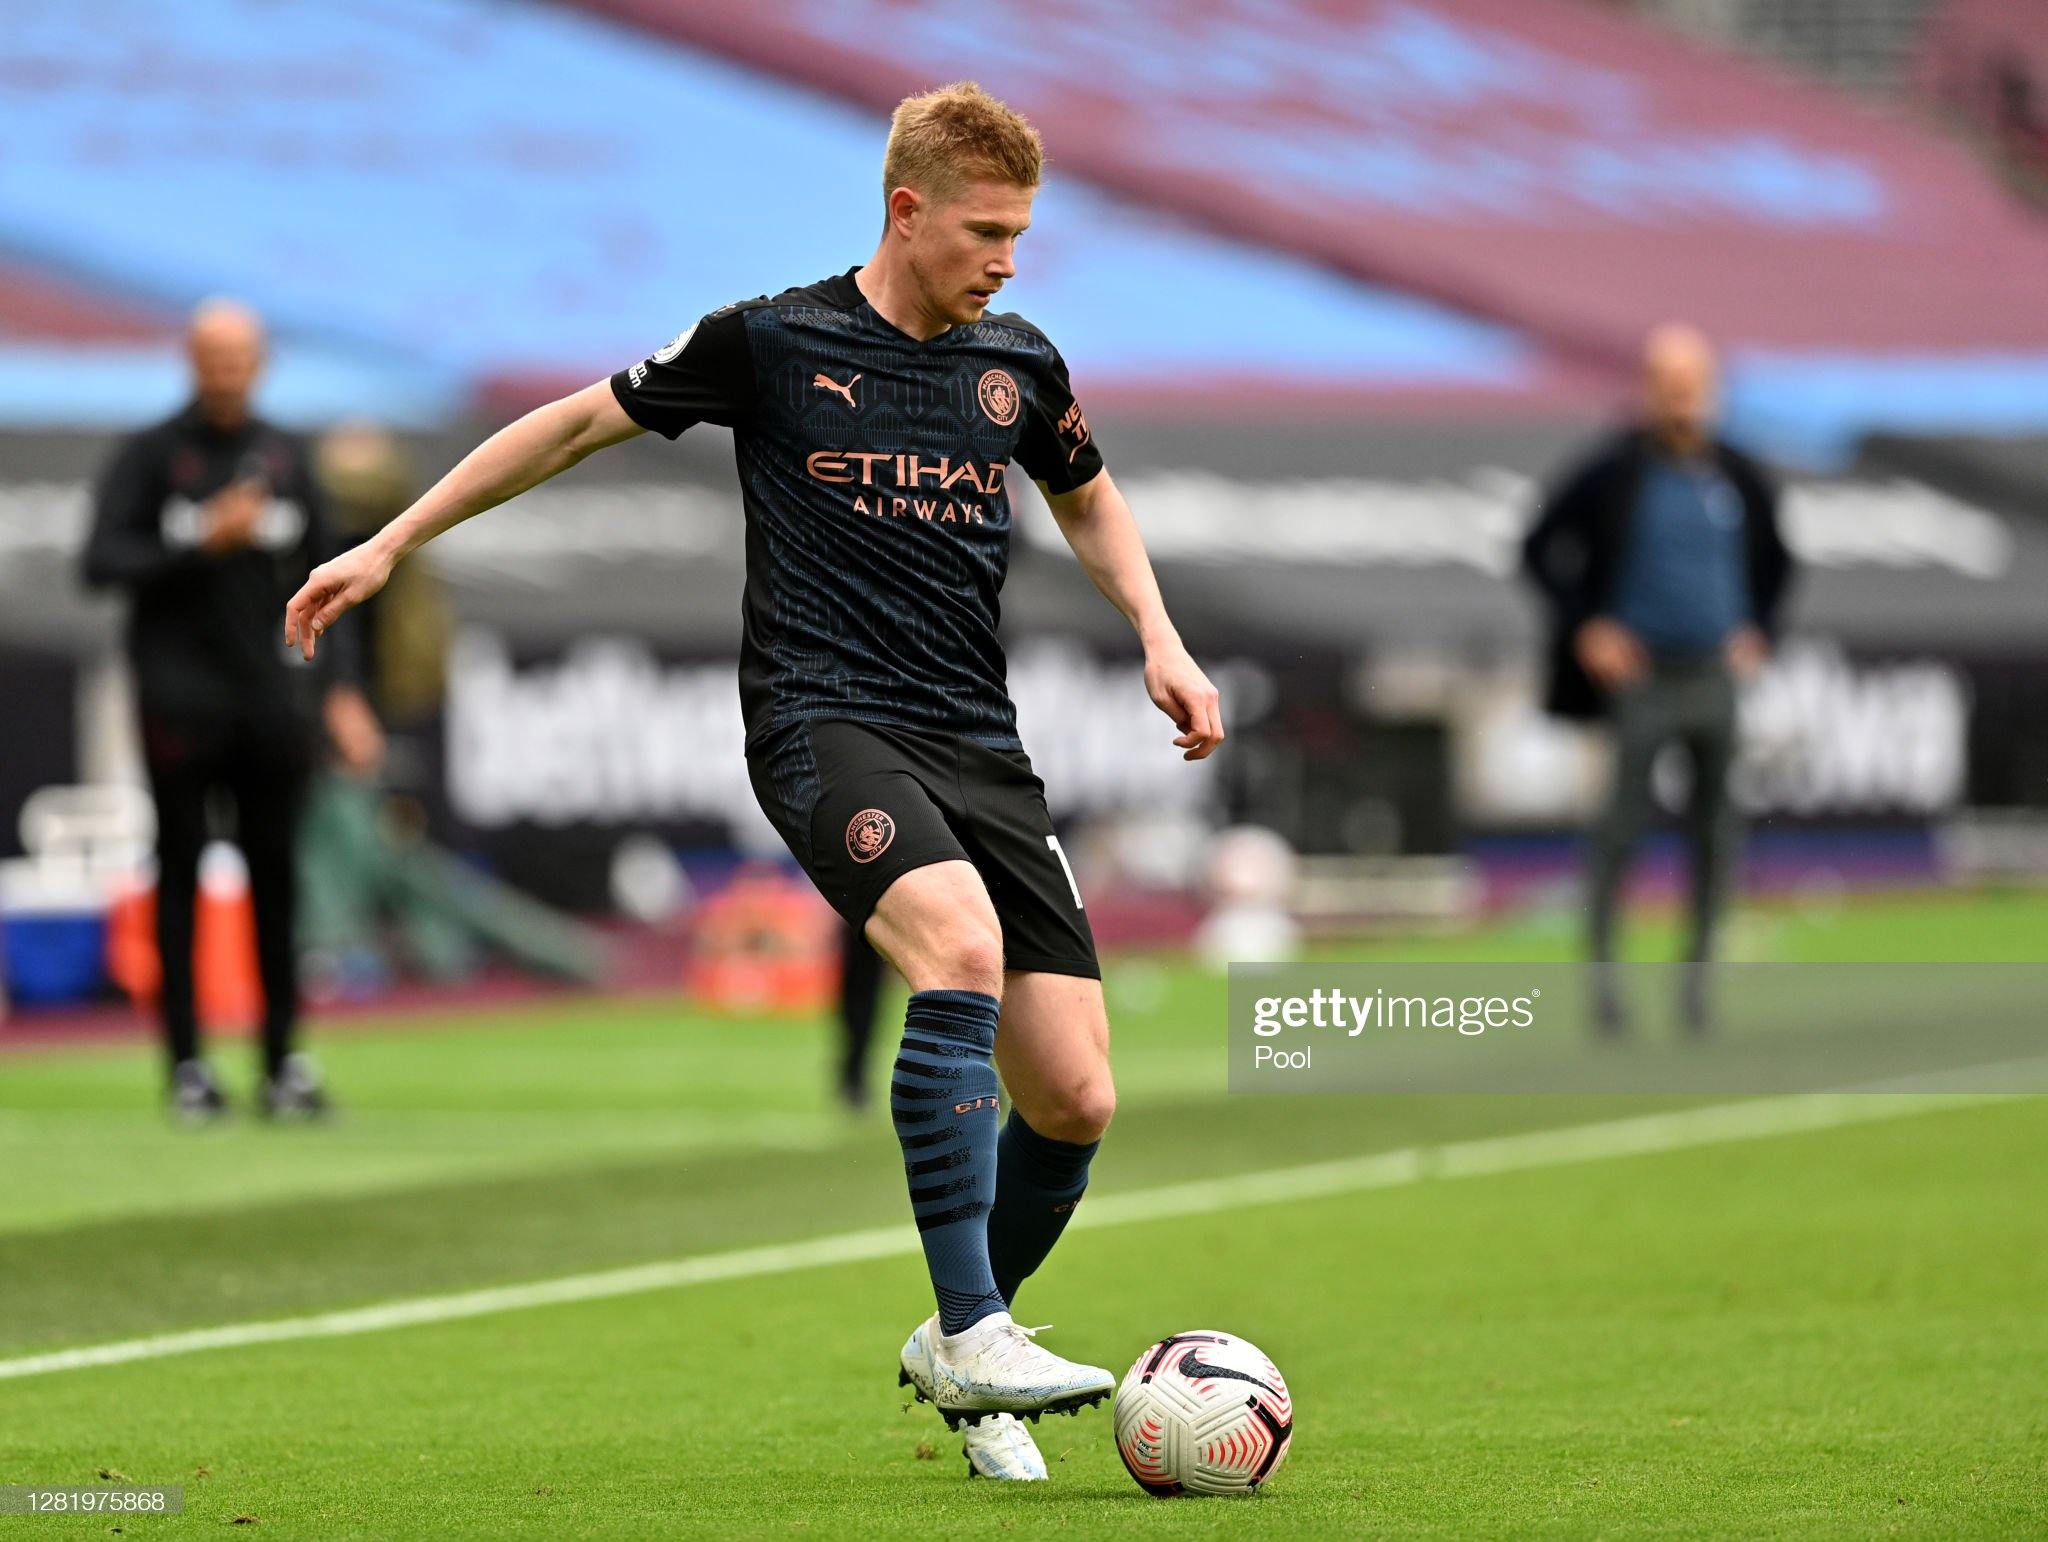 Marseille vs Manchester City Preview, prediction and odds